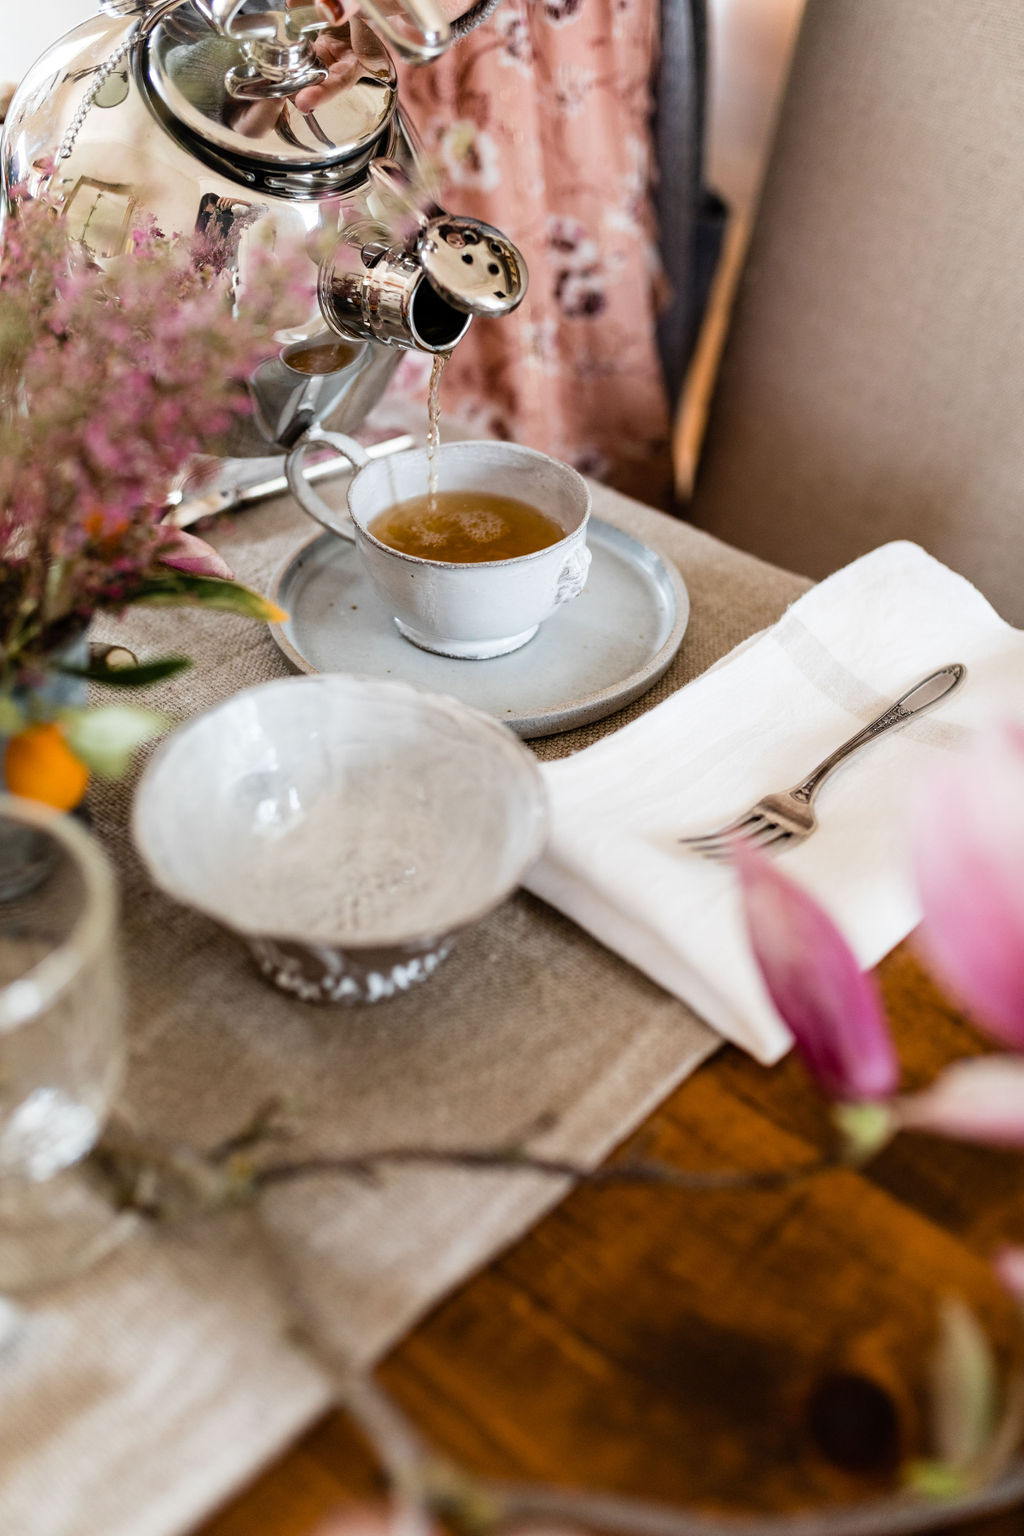 A Tea Party Spread to Inspire Your Easter Sunday Plans